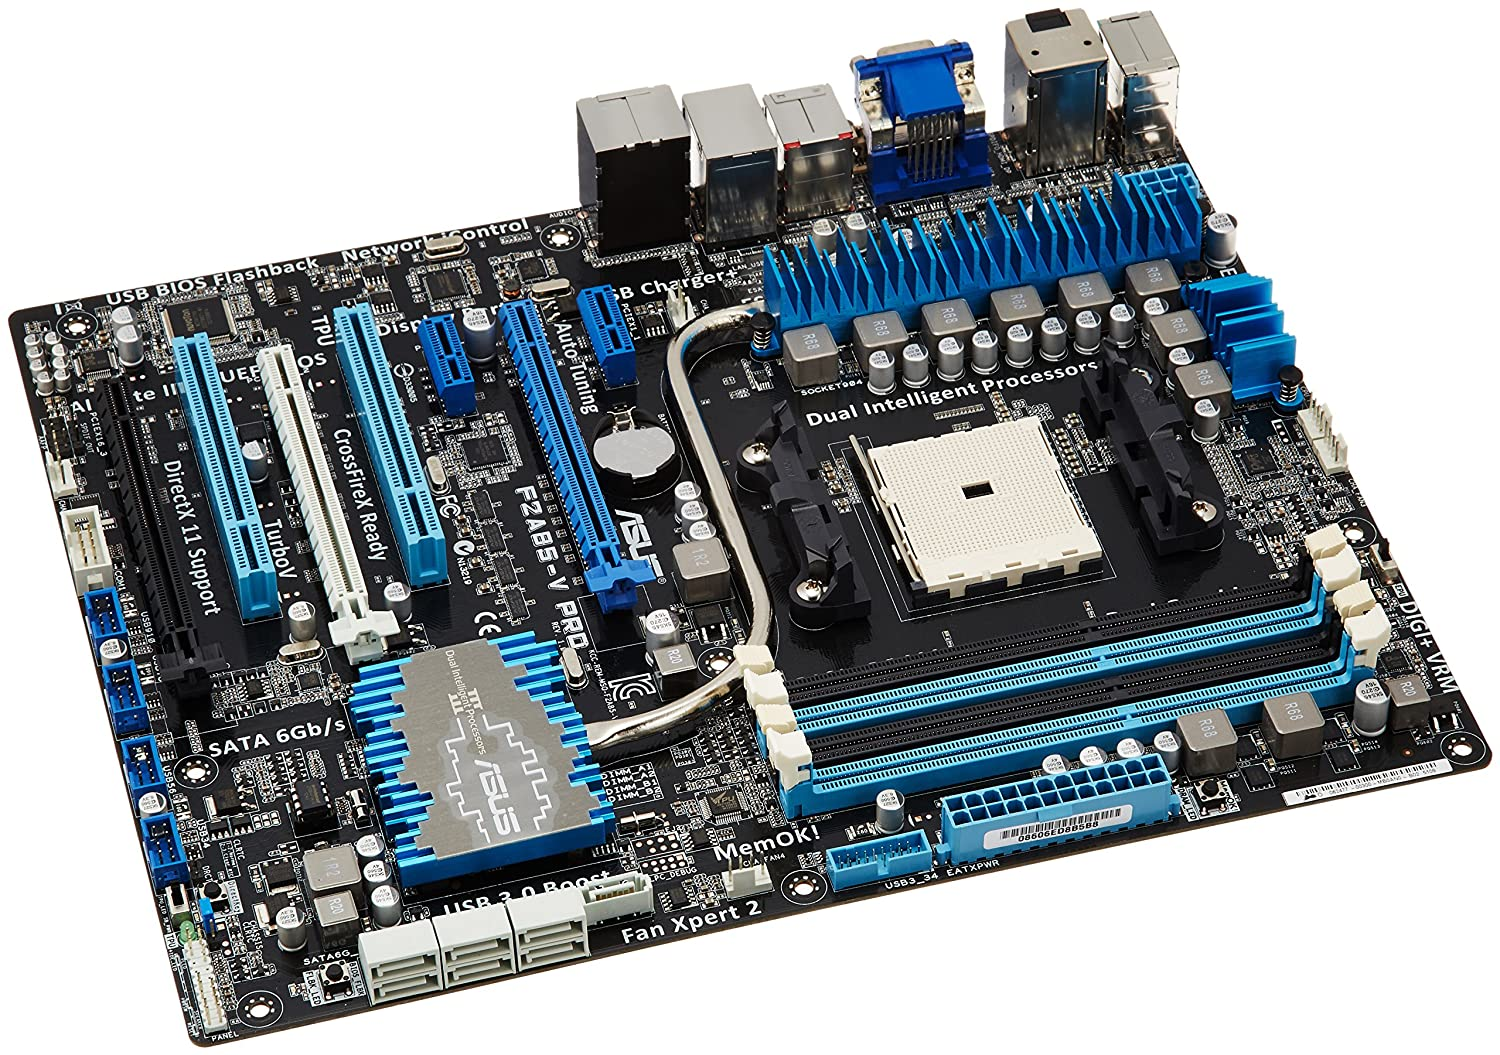 ASUS F2A85-V PRO MOTHERBOARD DOWNLOAD DRIVERS